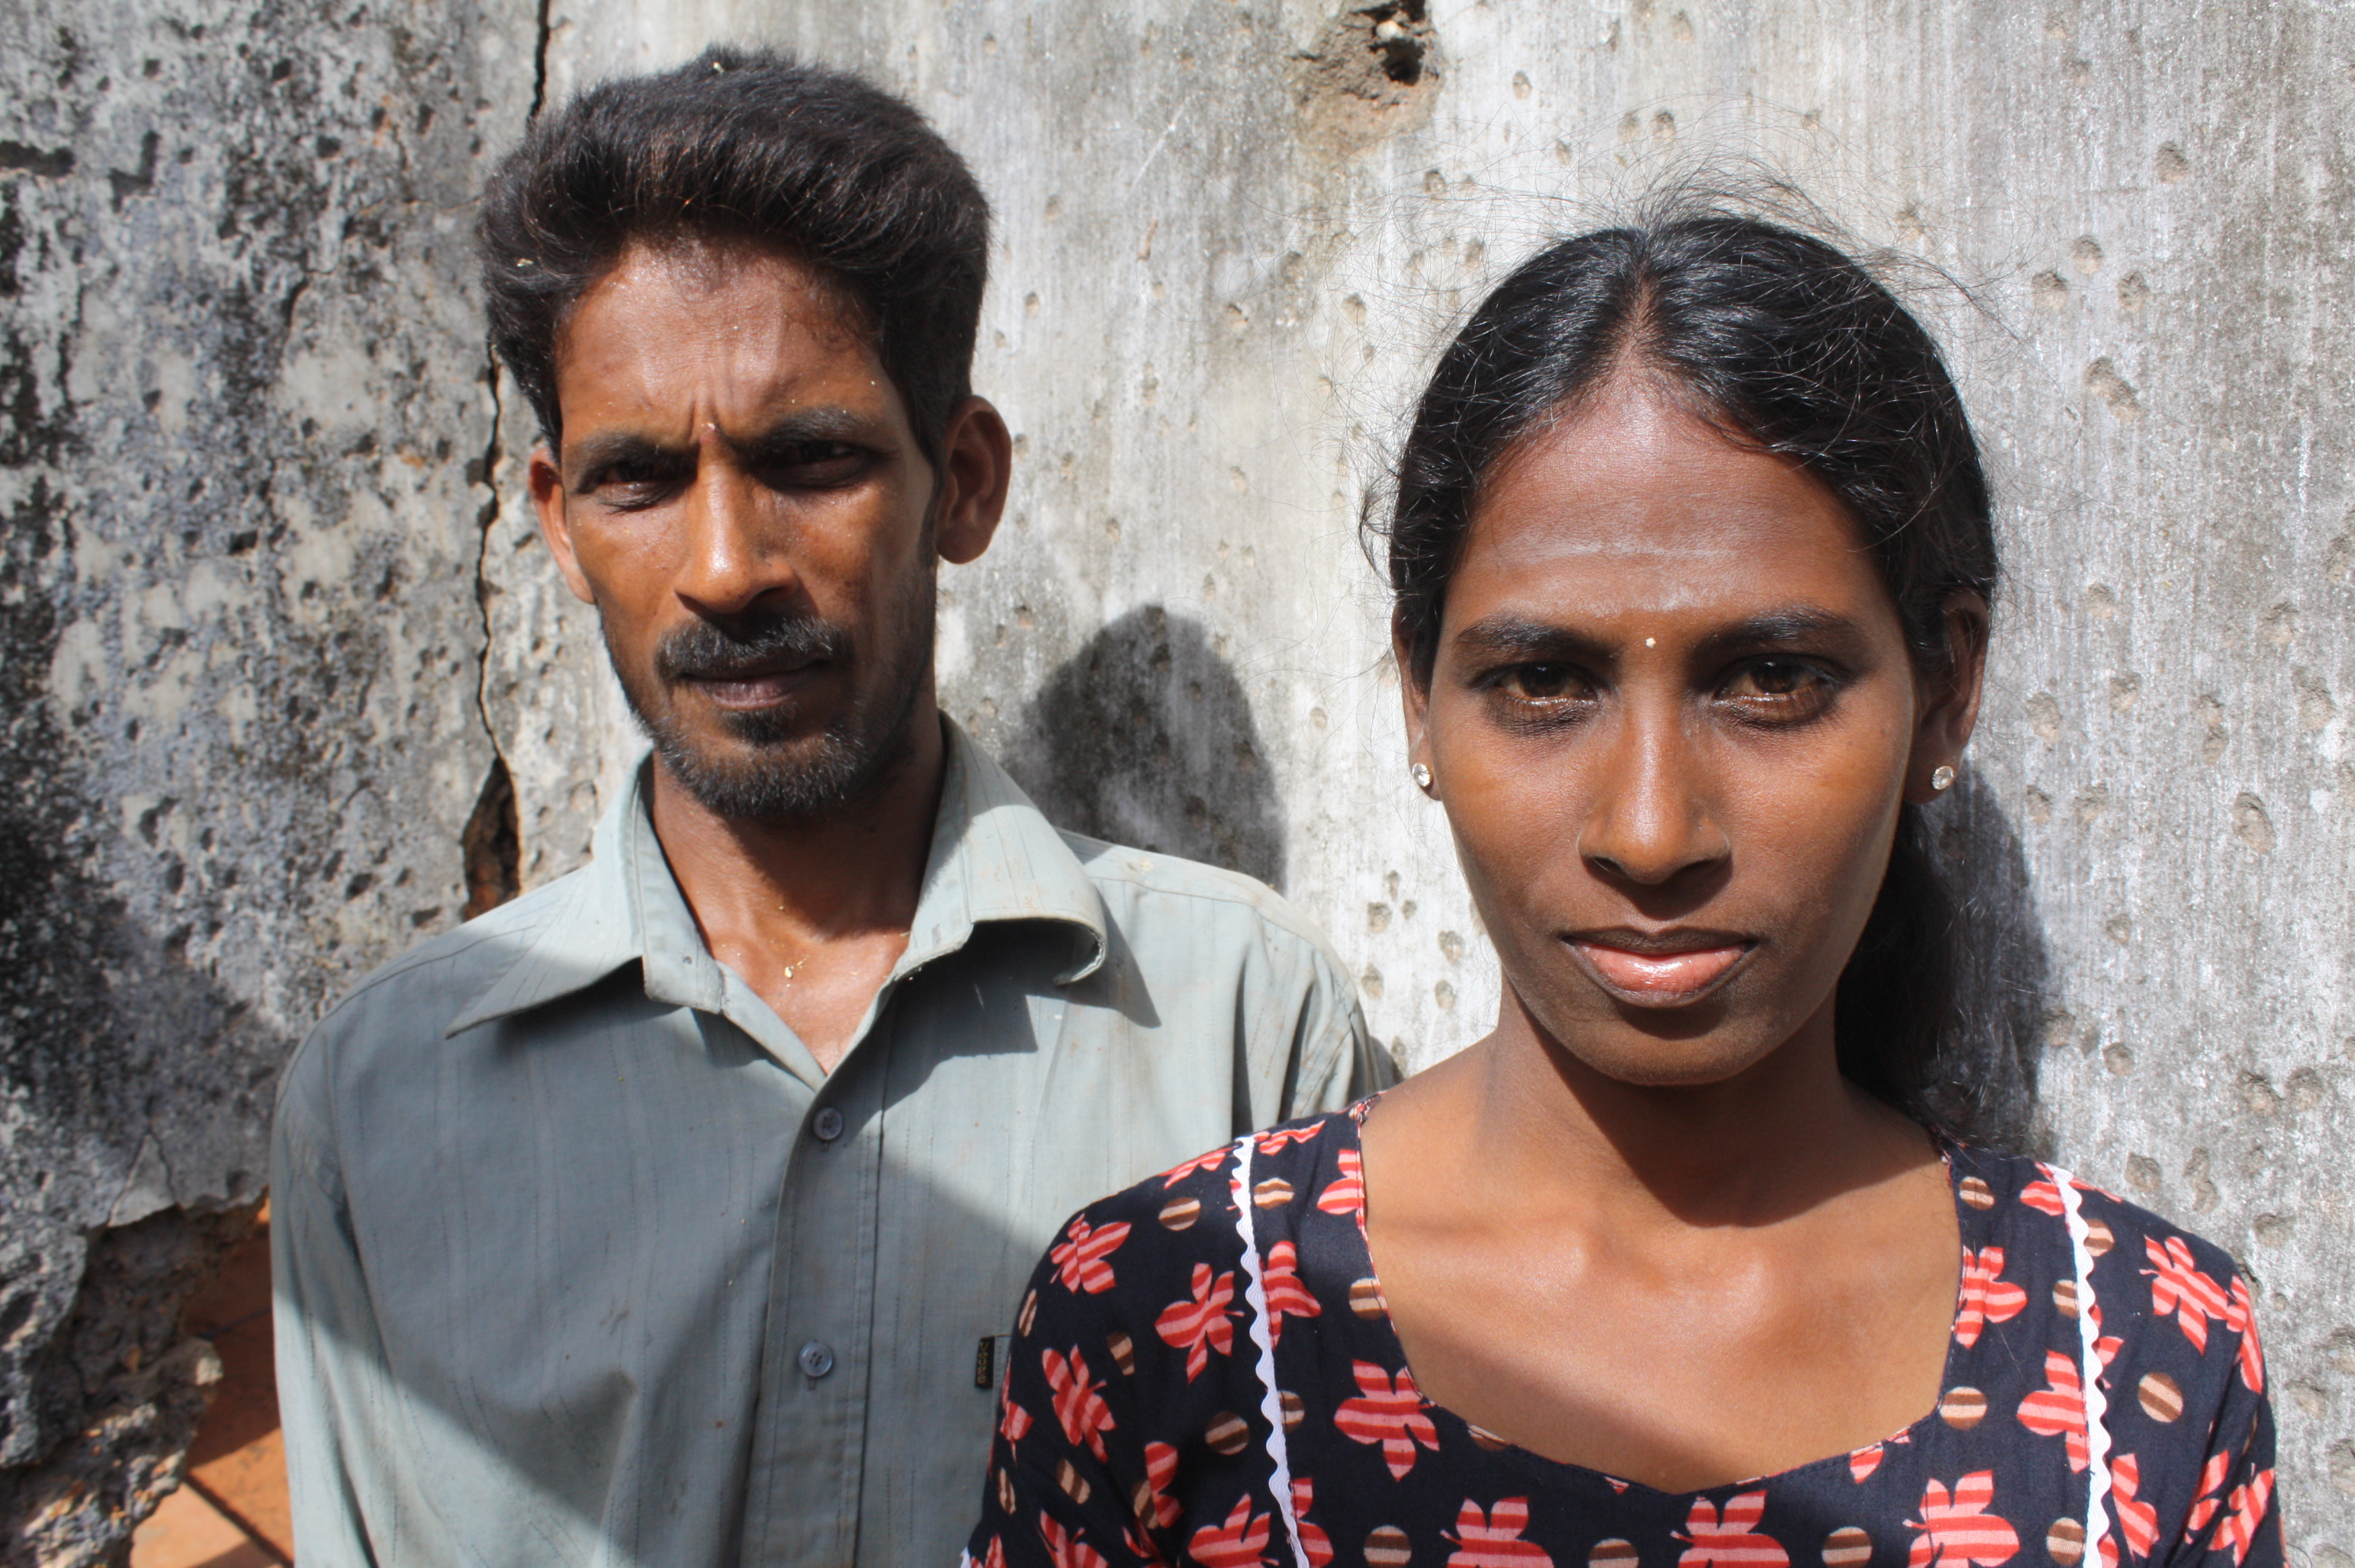 A recent returnee family in Jaffna and beneficiary the World Food Programme's cash voucher programme. As a result of the scheme, they can focus on rebuilding their home